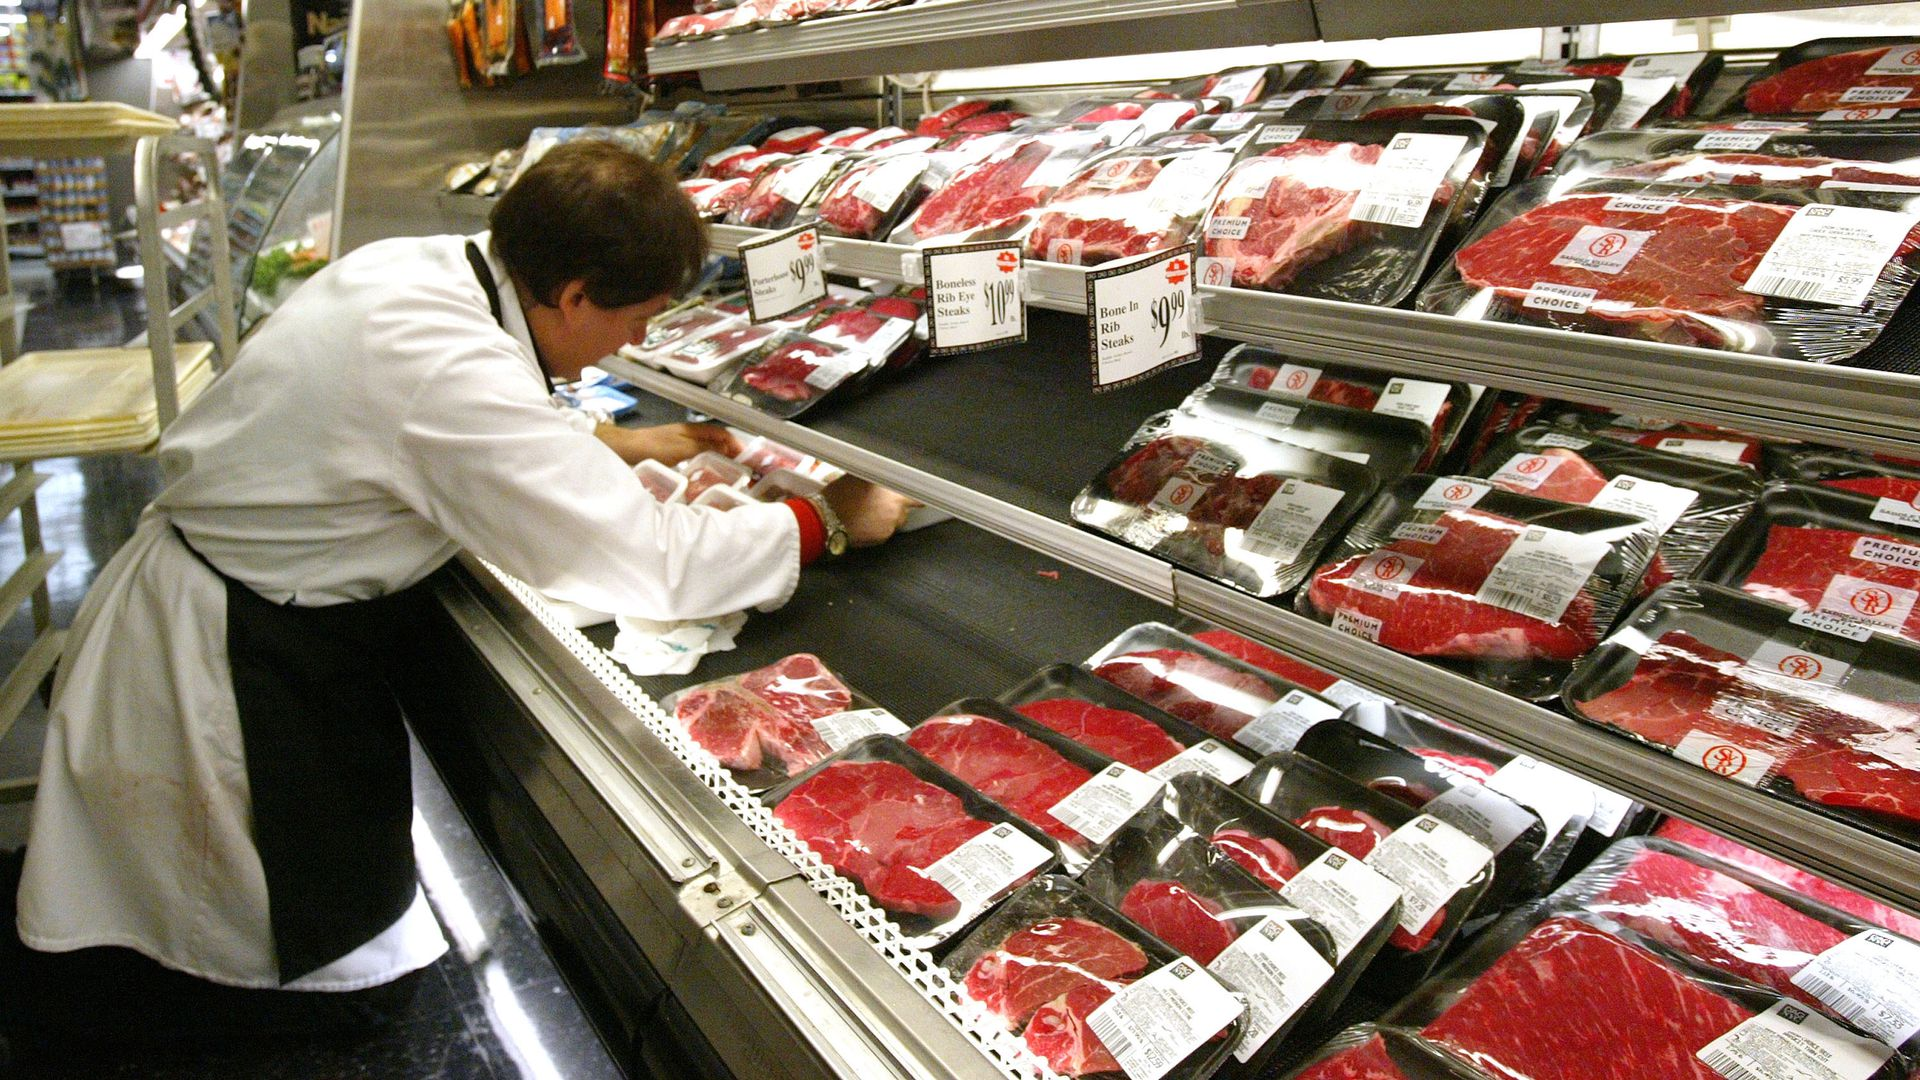 A butcher arranges meat products.